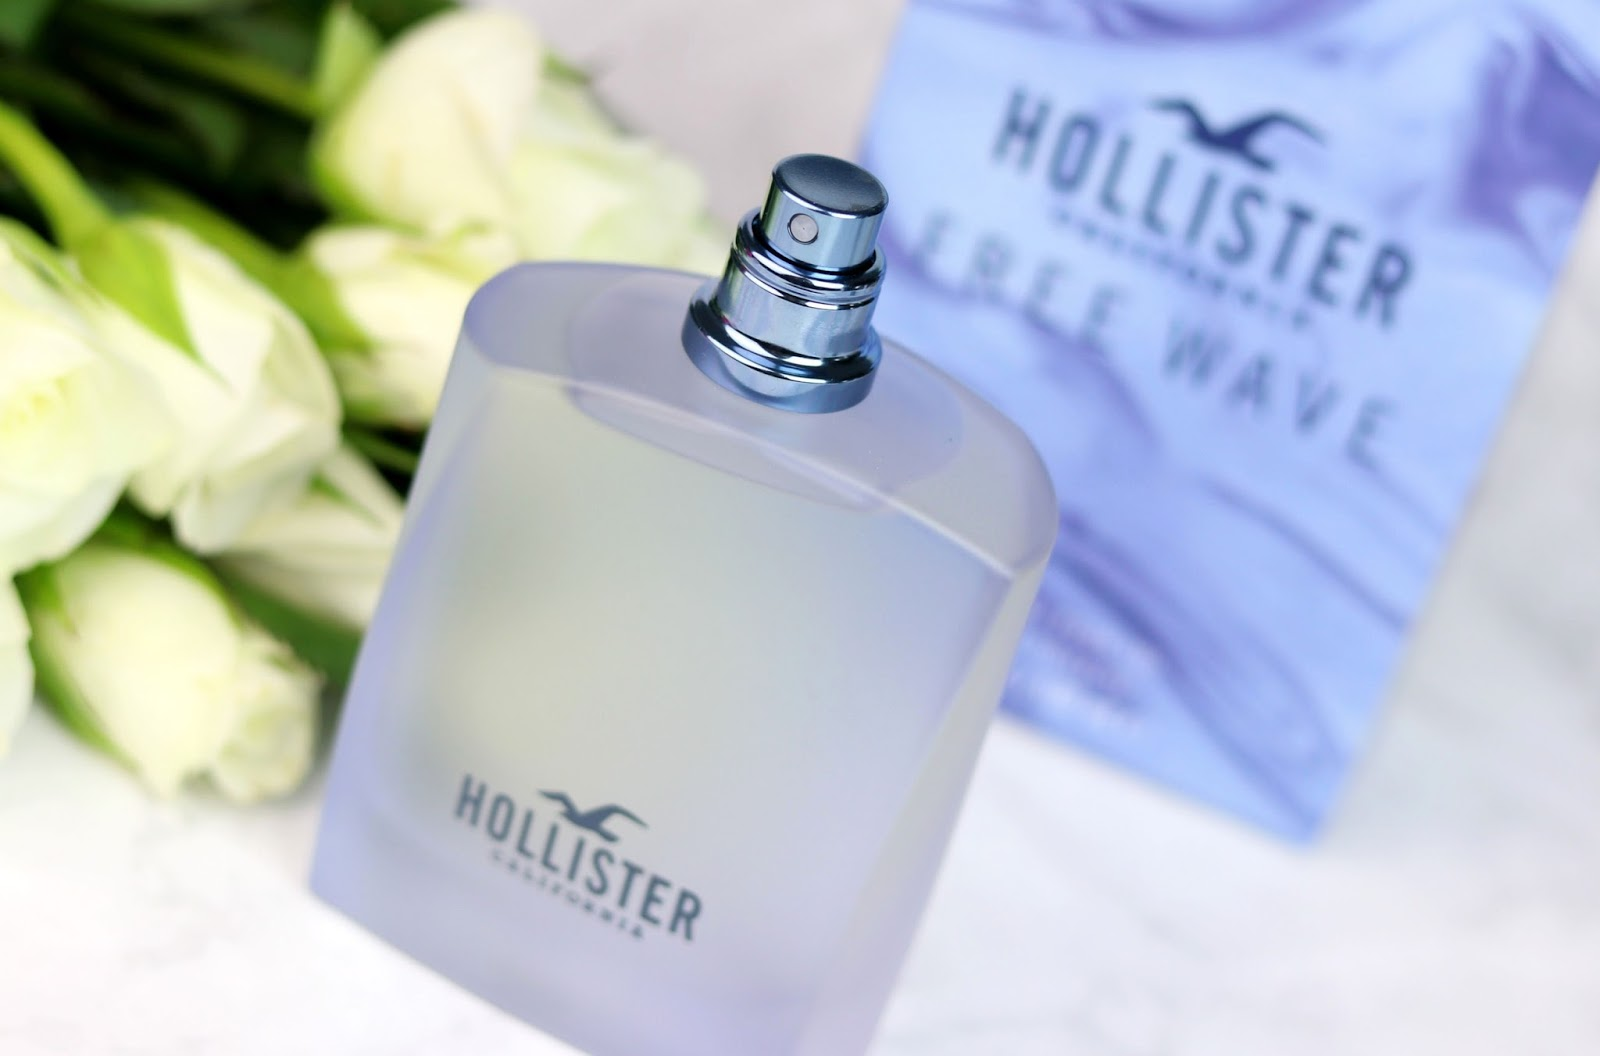 beauty blogger, beautypress, california, damenduft, duft, duftbeschreibung, düfte, eau de parfum, free wave, herrenduft, hollister, hollister wave, parfum, parfüm, review, sommer, summer scents 2018,